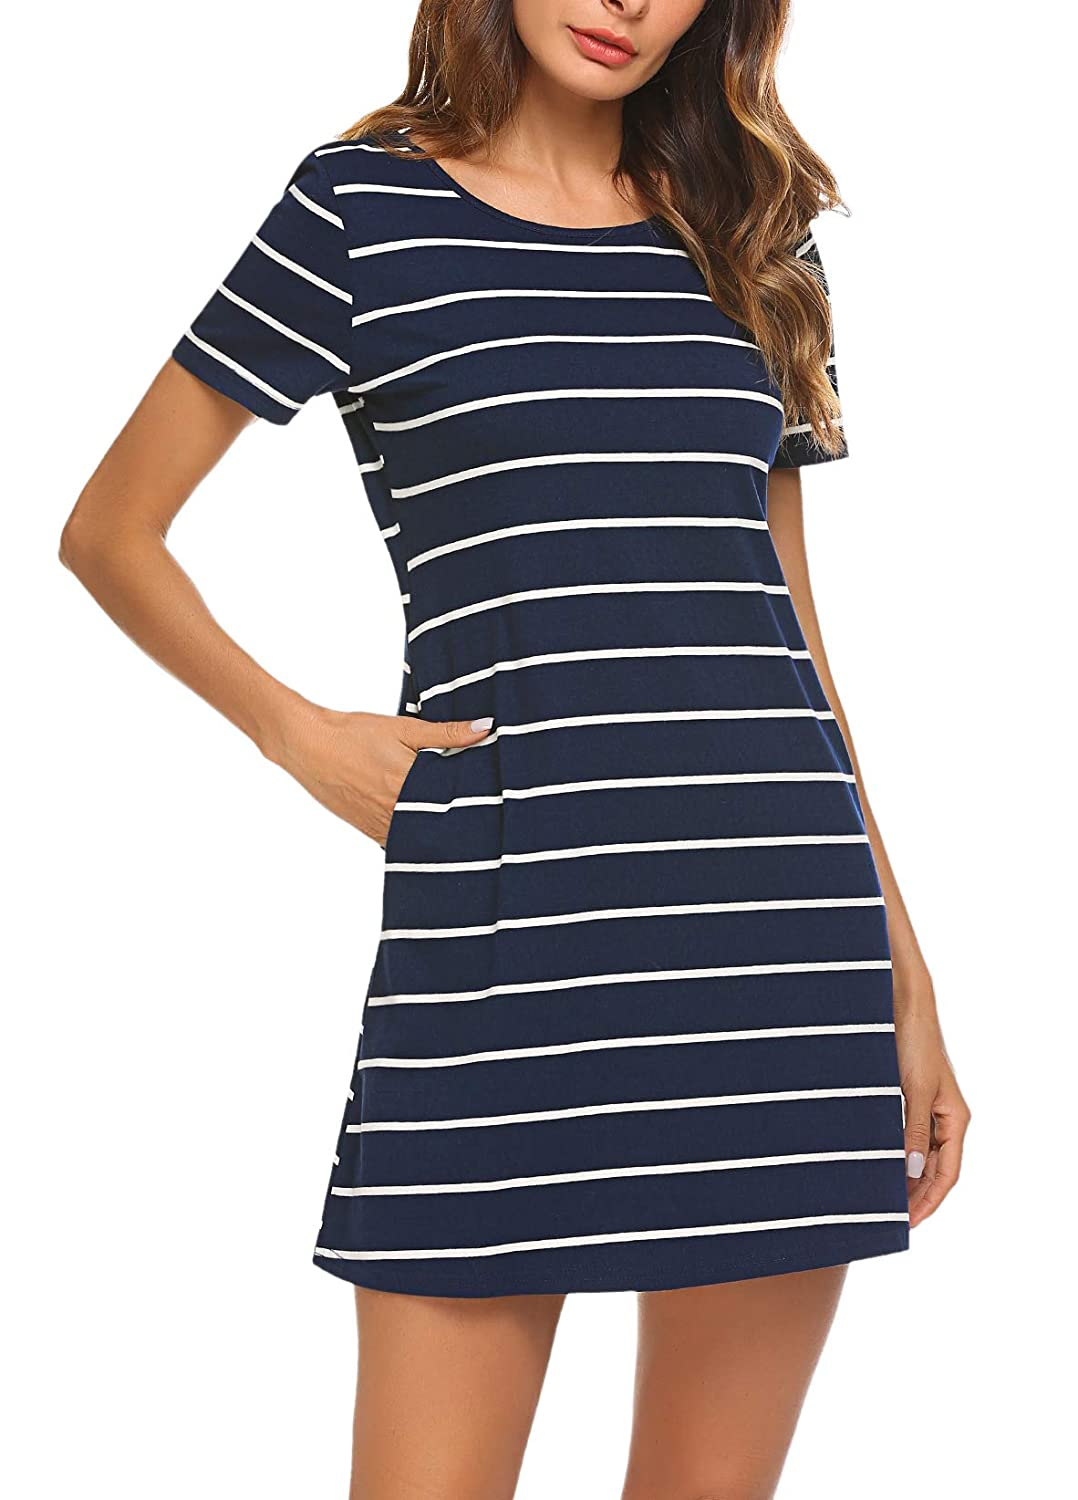 7f1d45bf34ec Feager Women's Casual Striped Criss Cross Short Sleeve T Shirt Mini Dress  with Pockets at Amazon Women's Clothing store: